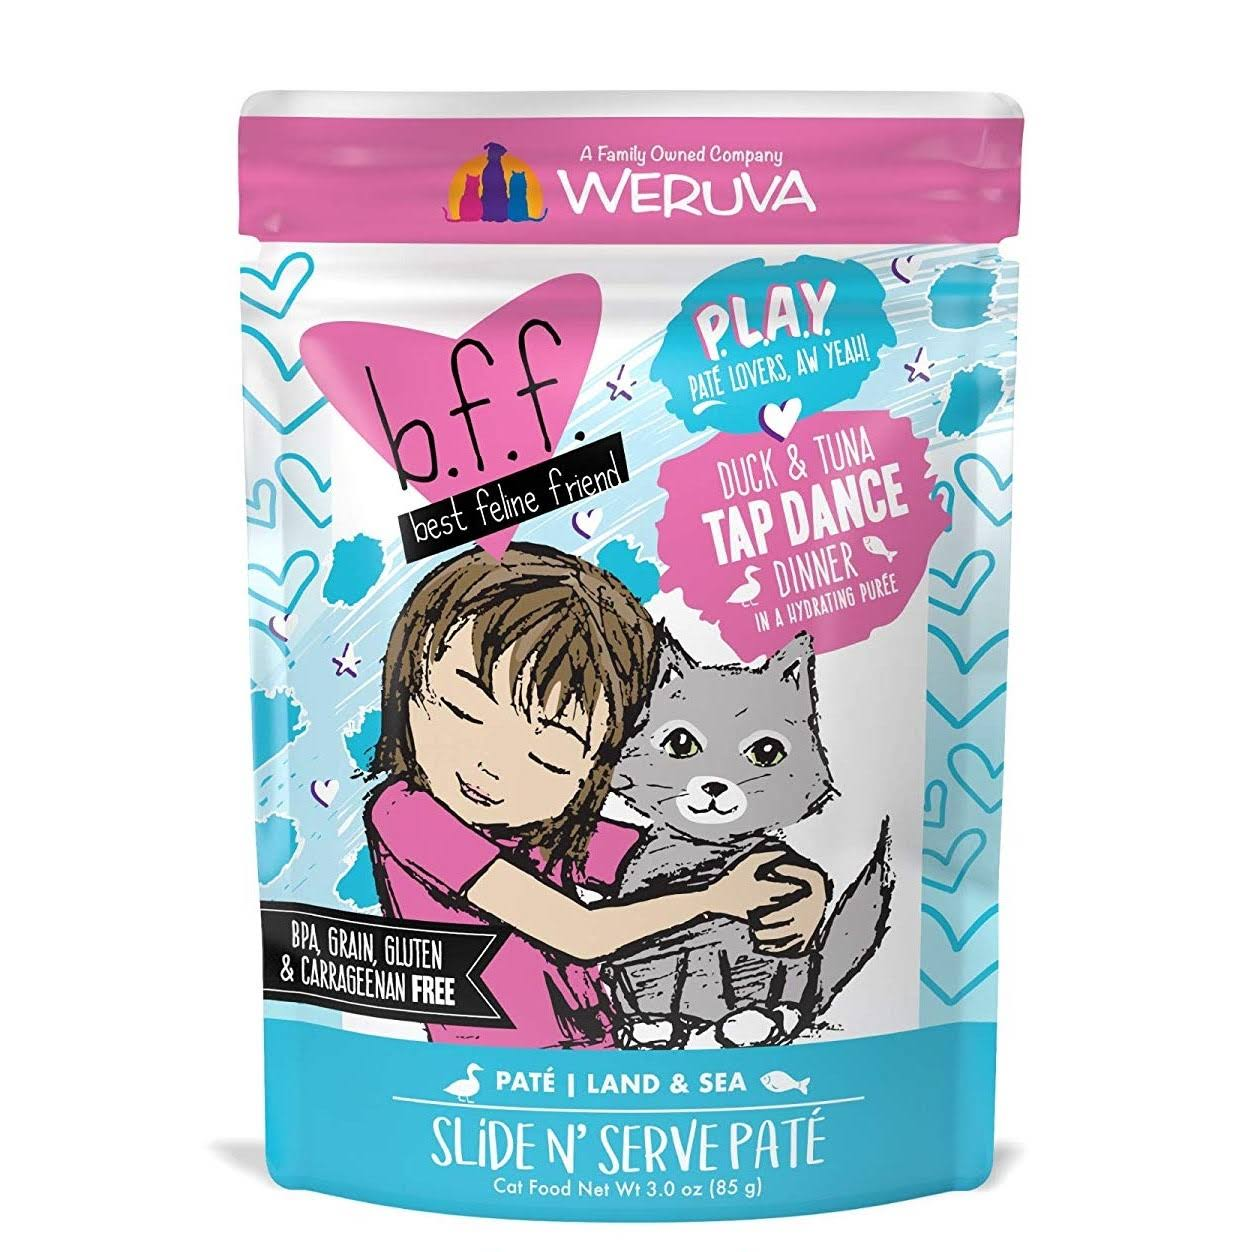 Best Feline Friend Play! Tap Dance 3.0 oz Pouch